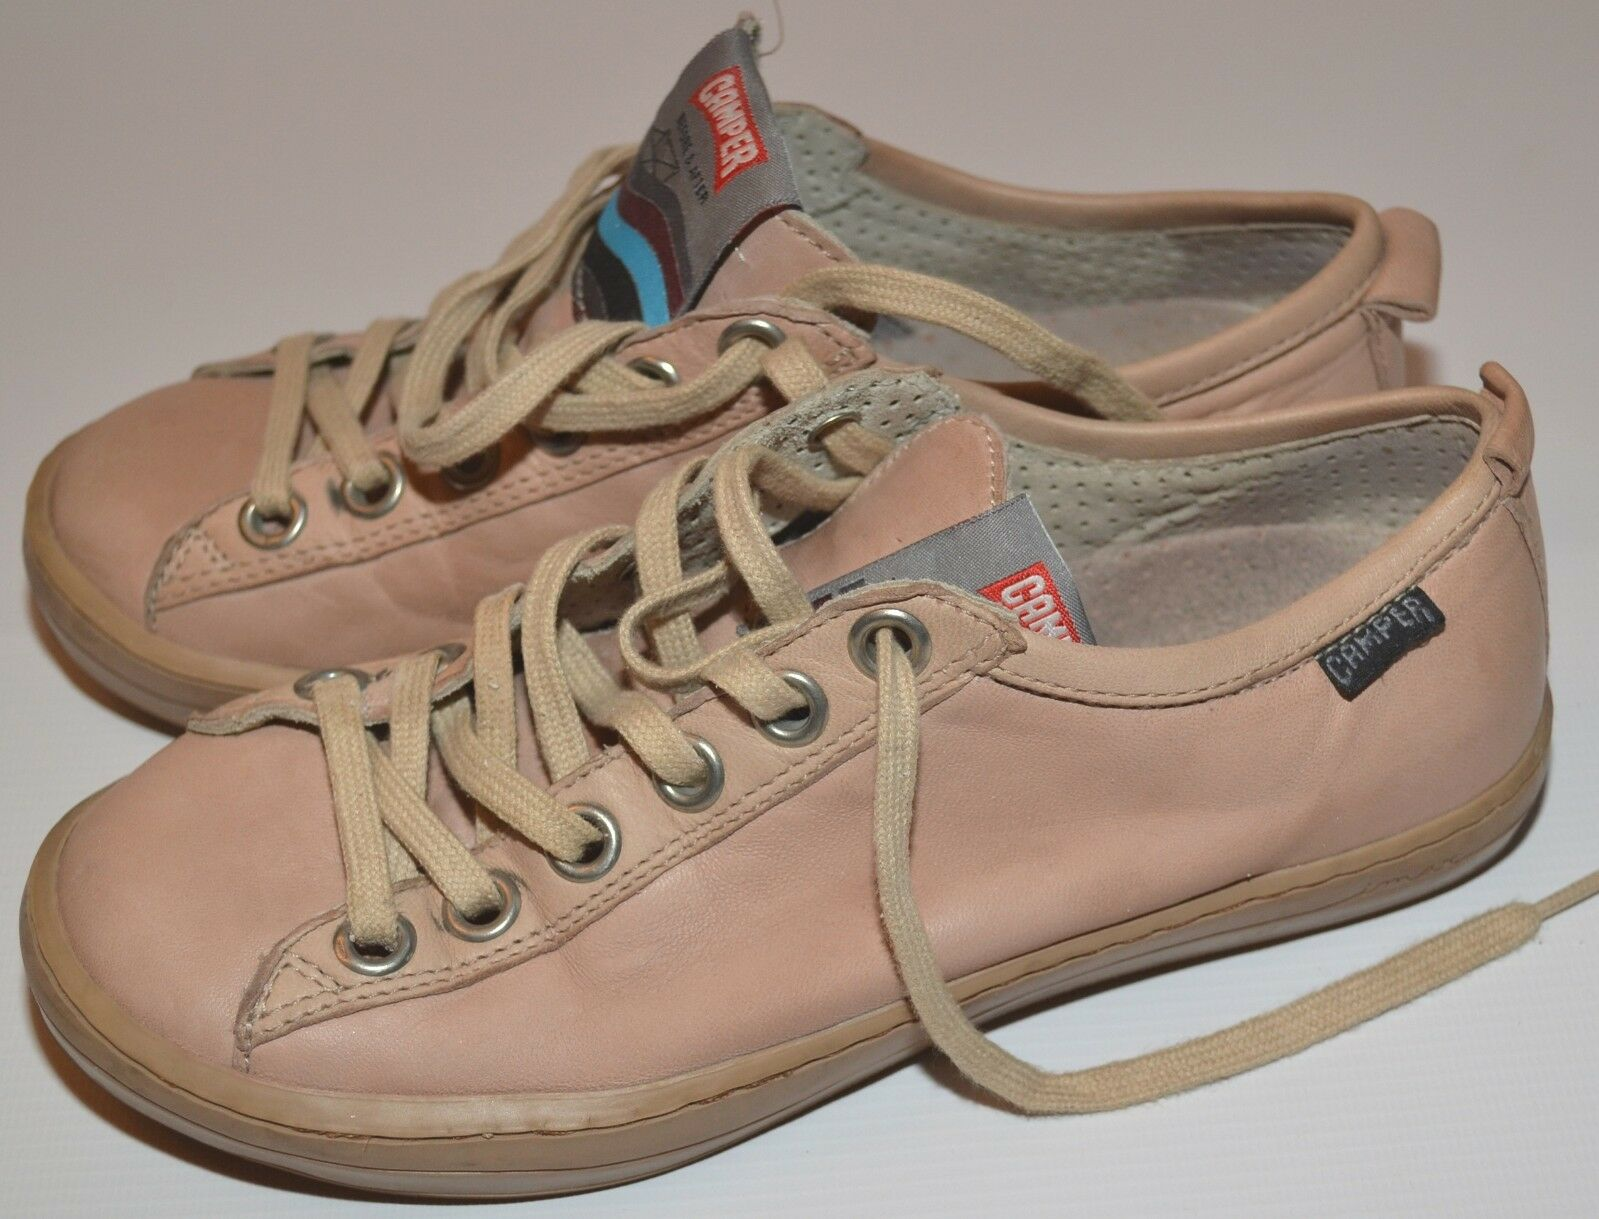 CAMPER LEATHER SAILING BLUSH SNEAKERS IMAR TRAINERS SAILING LEATHER SHOES EURO 35 / UK 3 USED 43f5c3